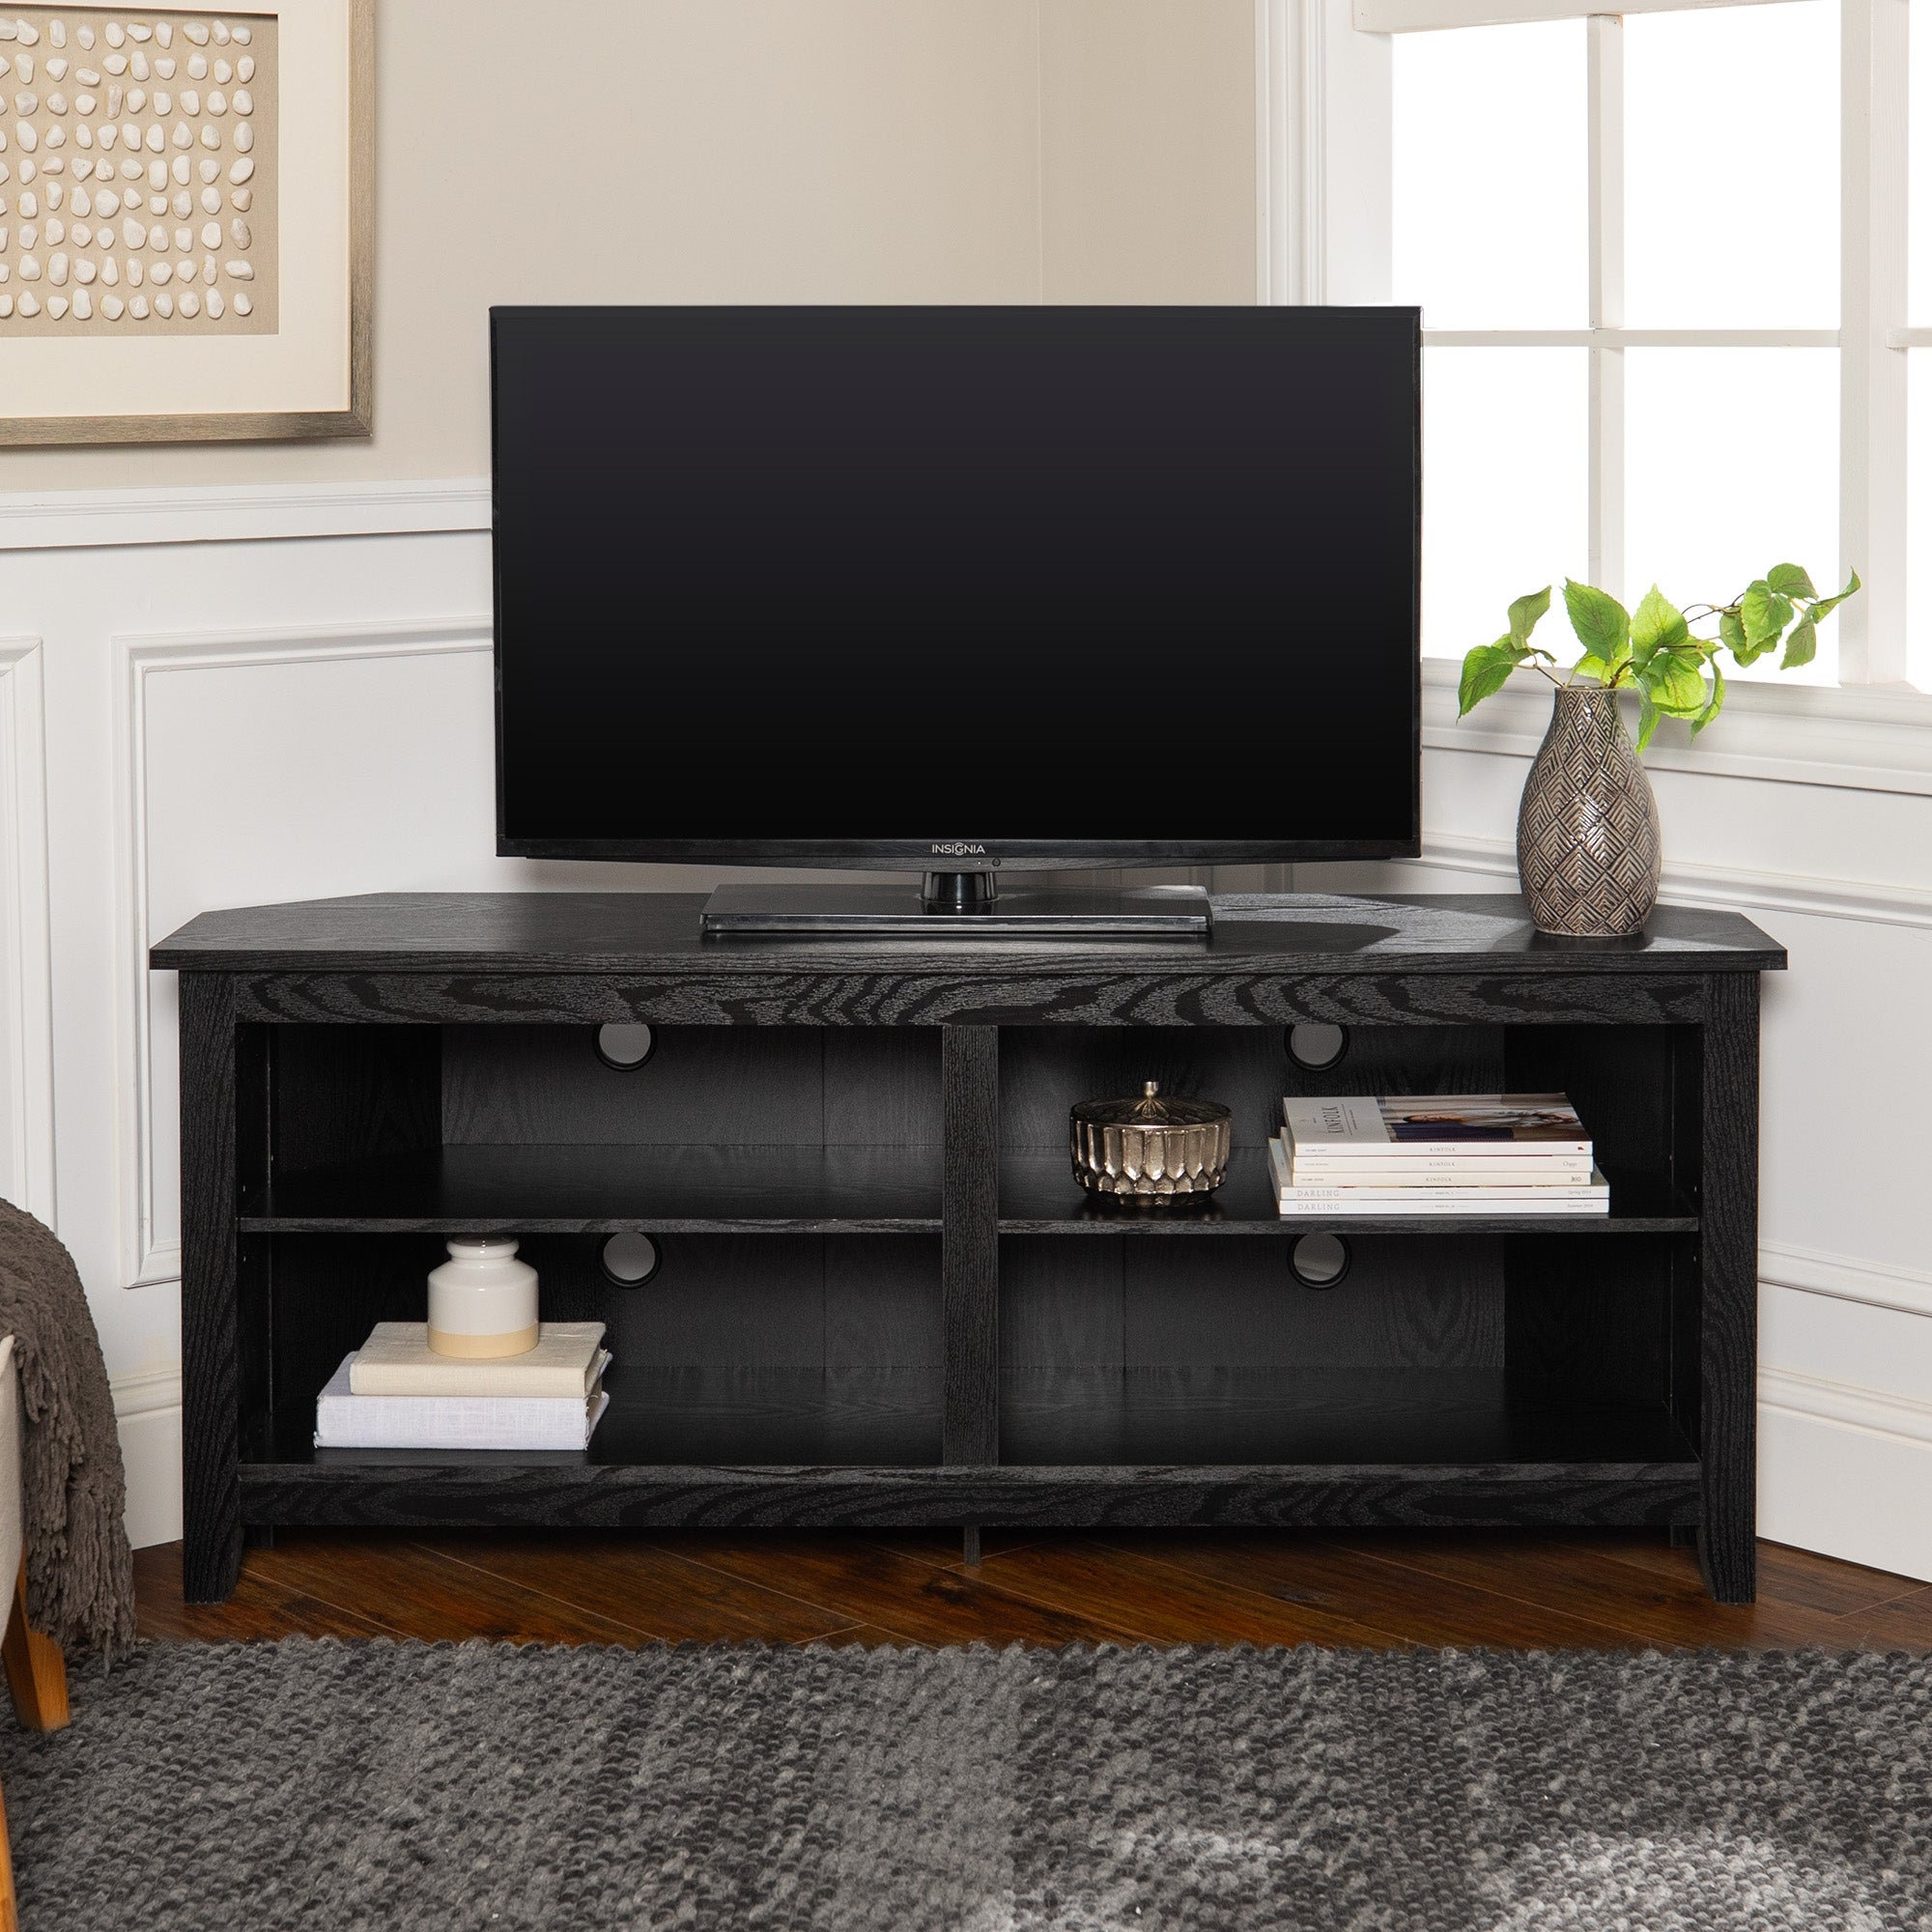 Shop Ogden 58 Inch Black Corner Tv Stand Console With Open Shelving Overstock 10309751